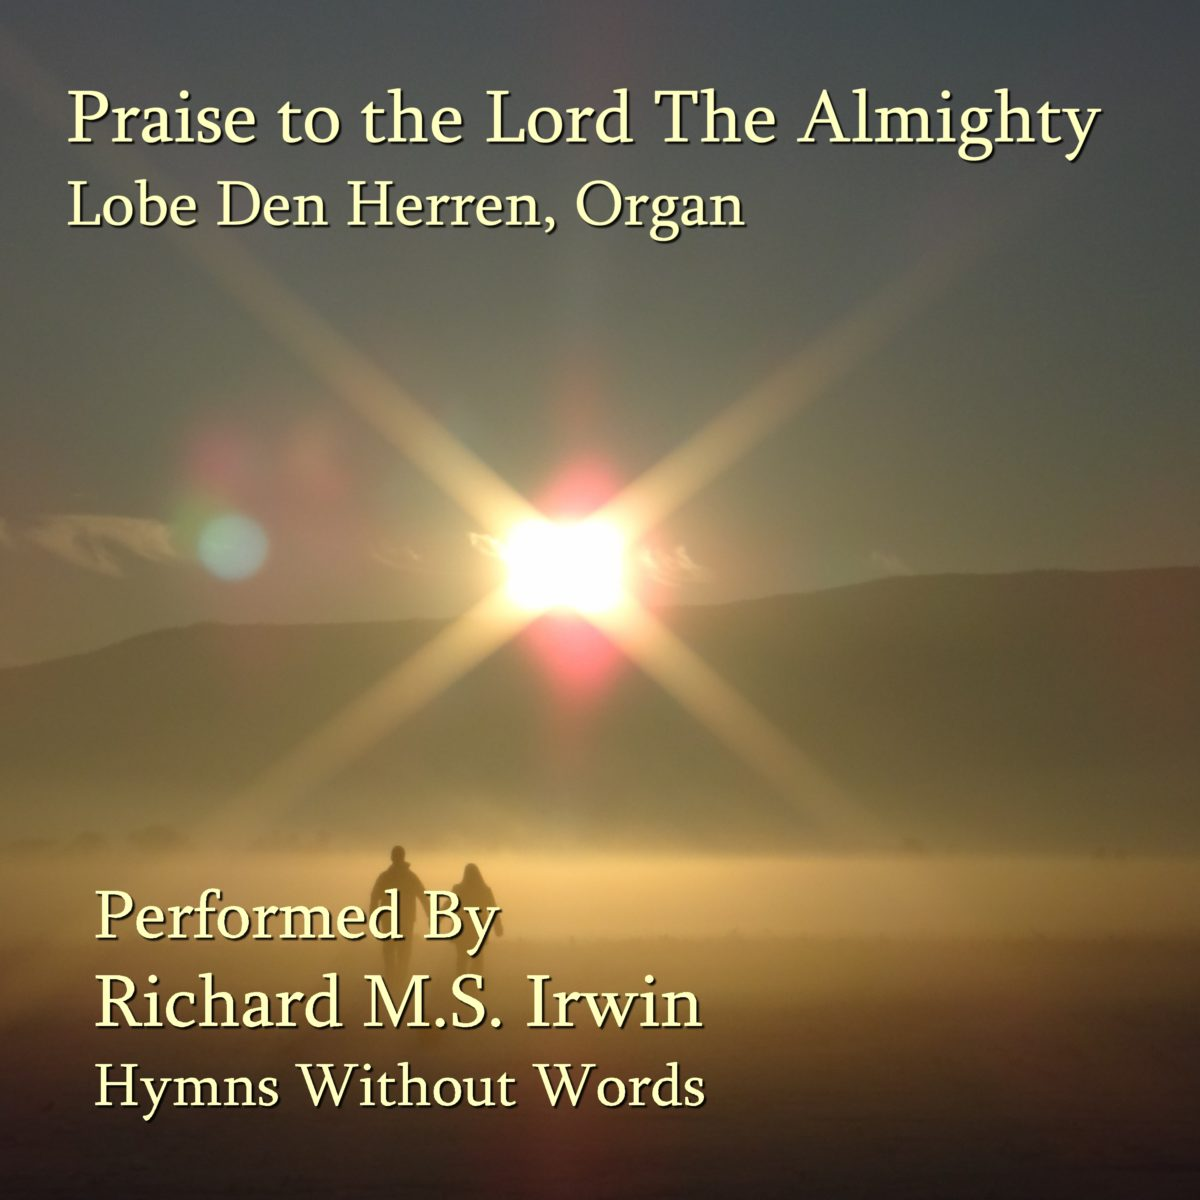 Praise To The Lord, The Almighty (Lobe Den Herren – 4 Verses) – Organ